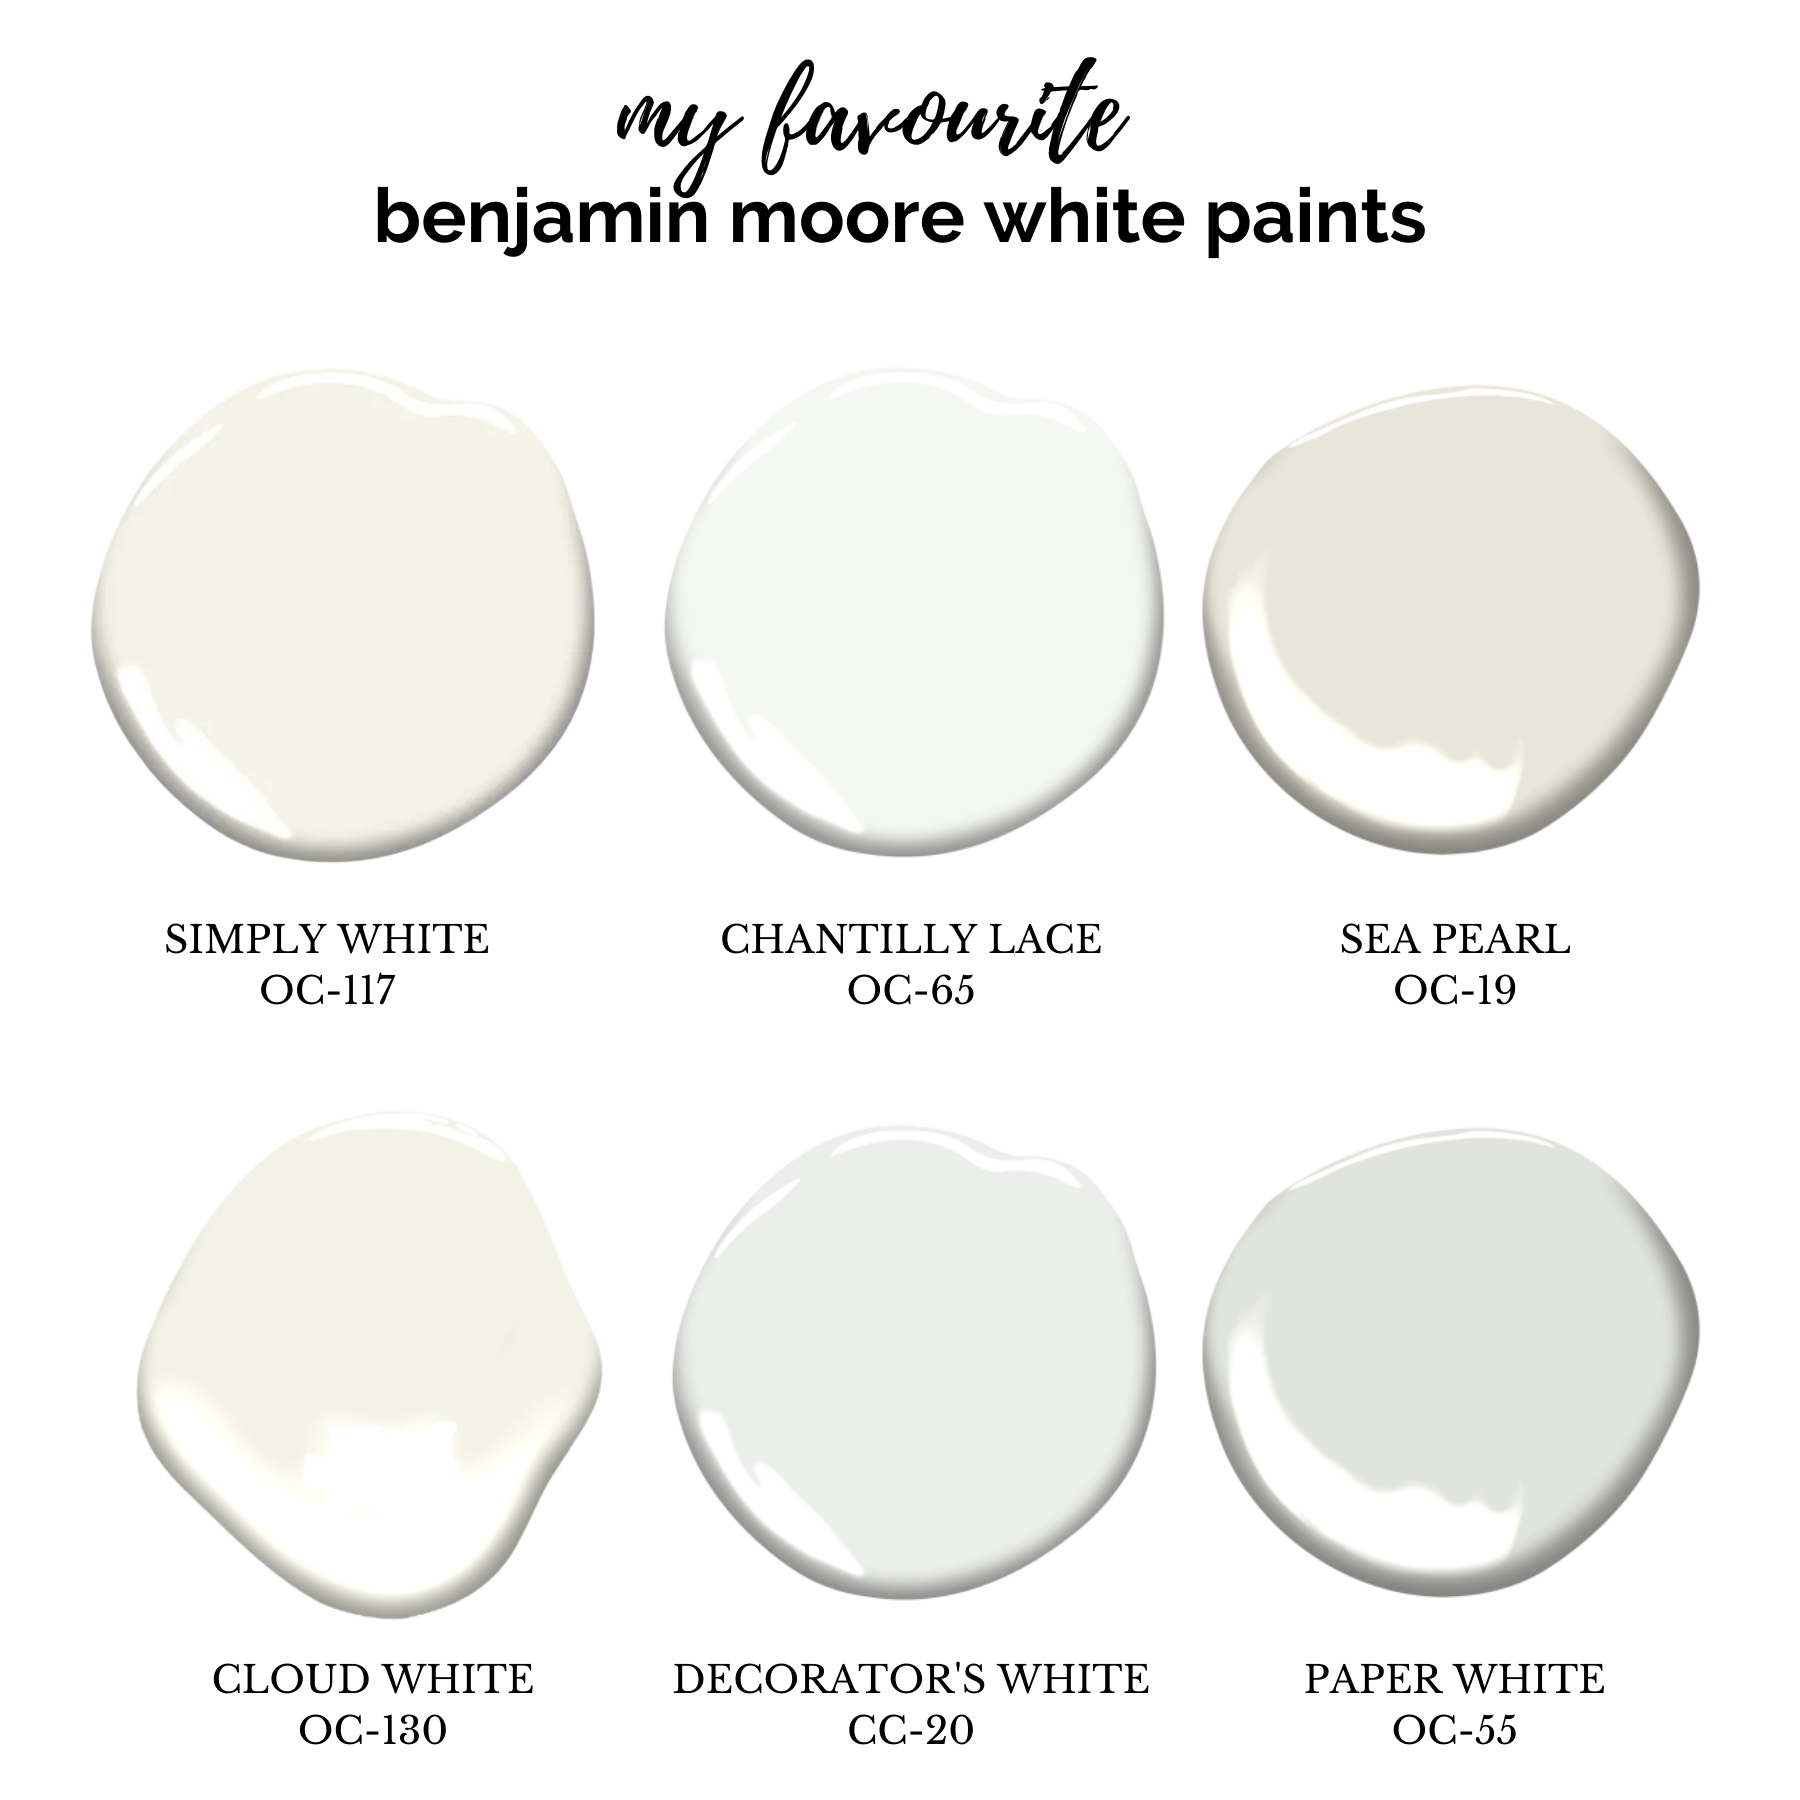 benjamin moore white paints, simply white, cloud white, sea pearl, decorators white, chantilly lace